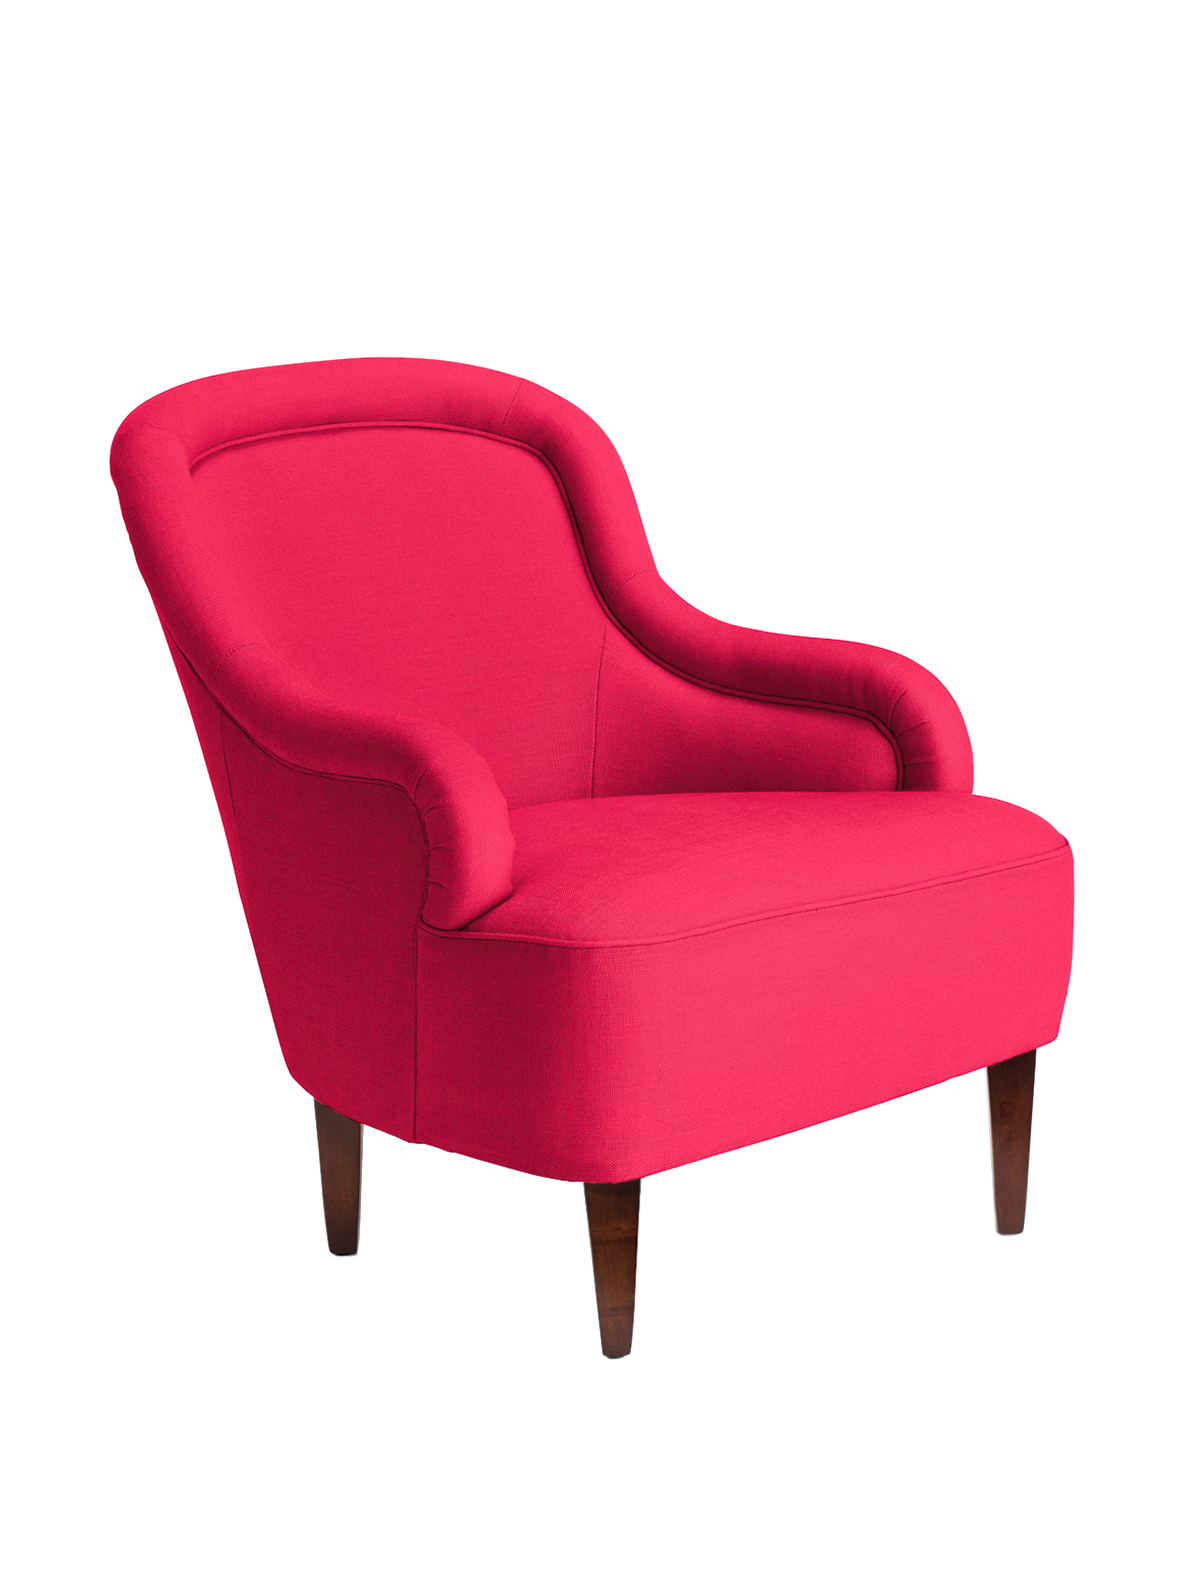 Kate spade furniture collection little fashion paradise for Furniture collection